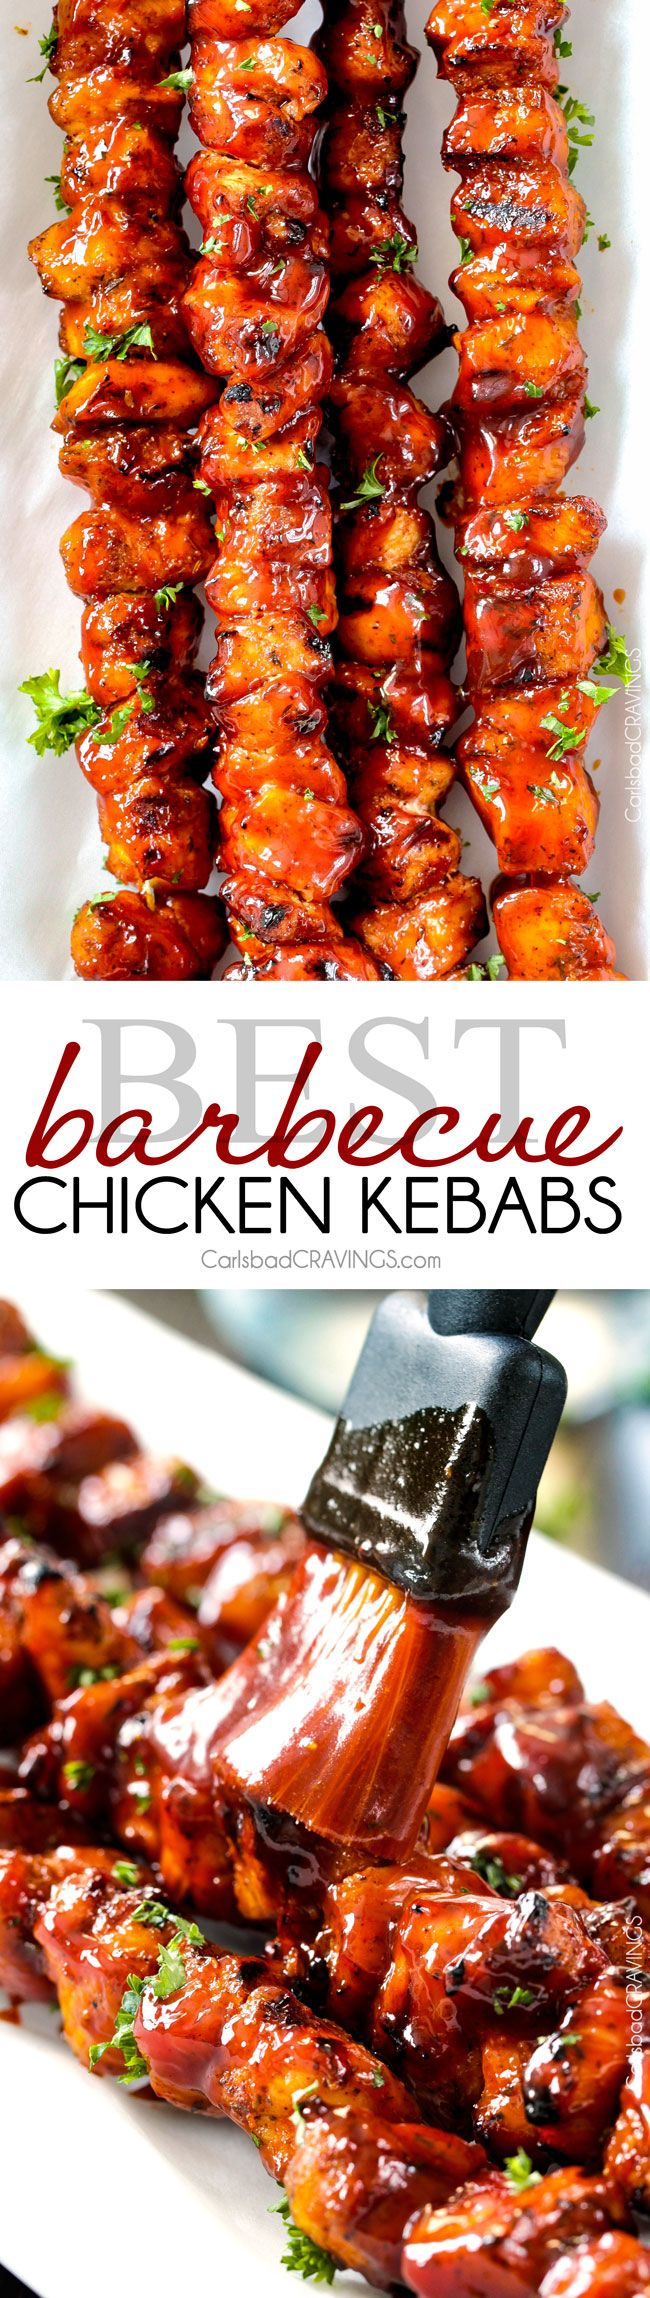 These BBQ Chicken Kebabs are my go-to grill recipe with the most amazing…